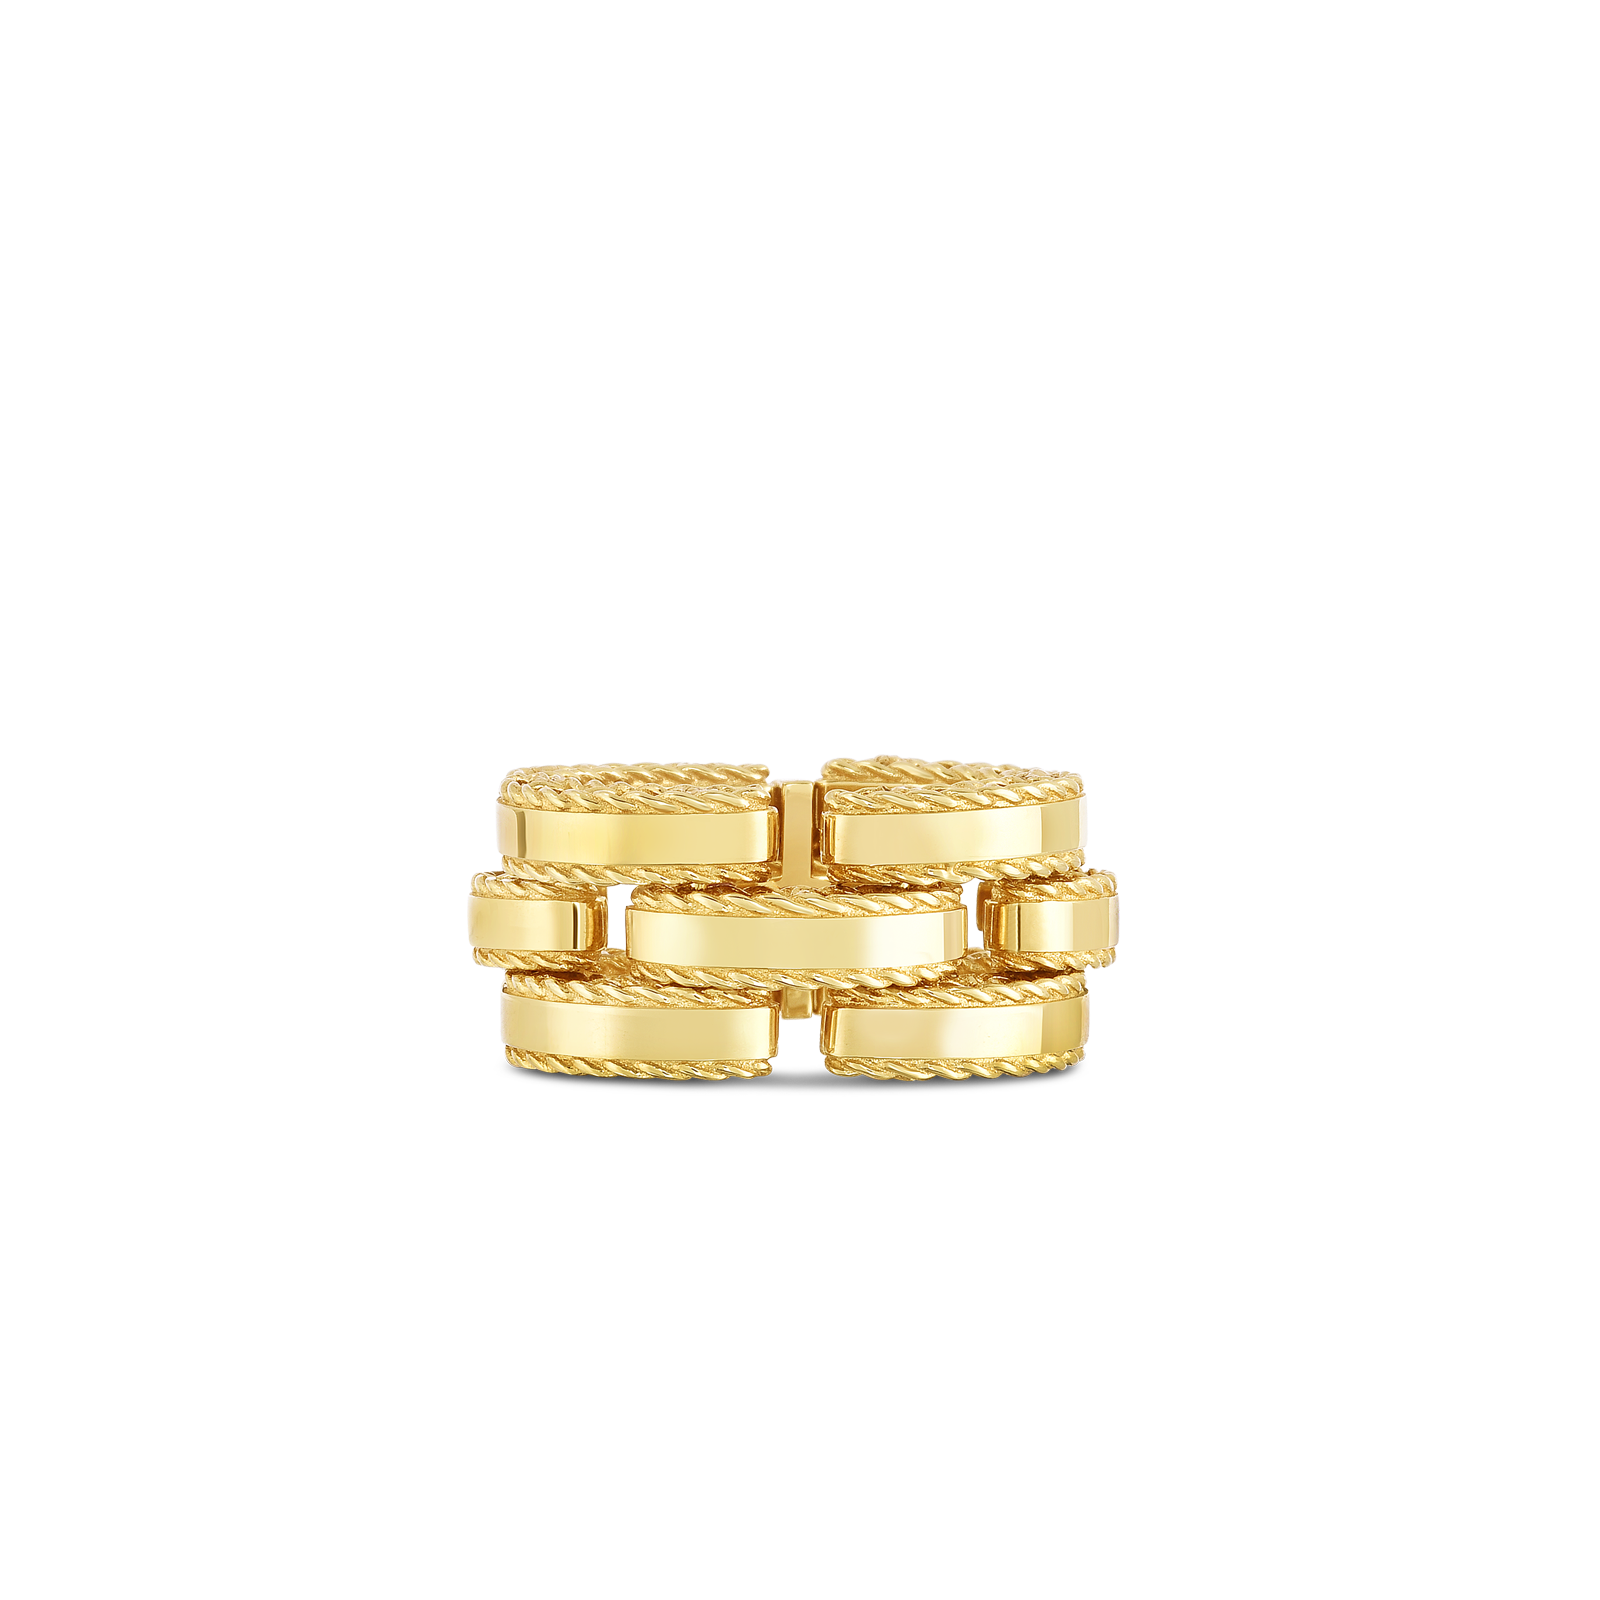 Roberto Coin 18K Yellow Gold Retro Link Ring